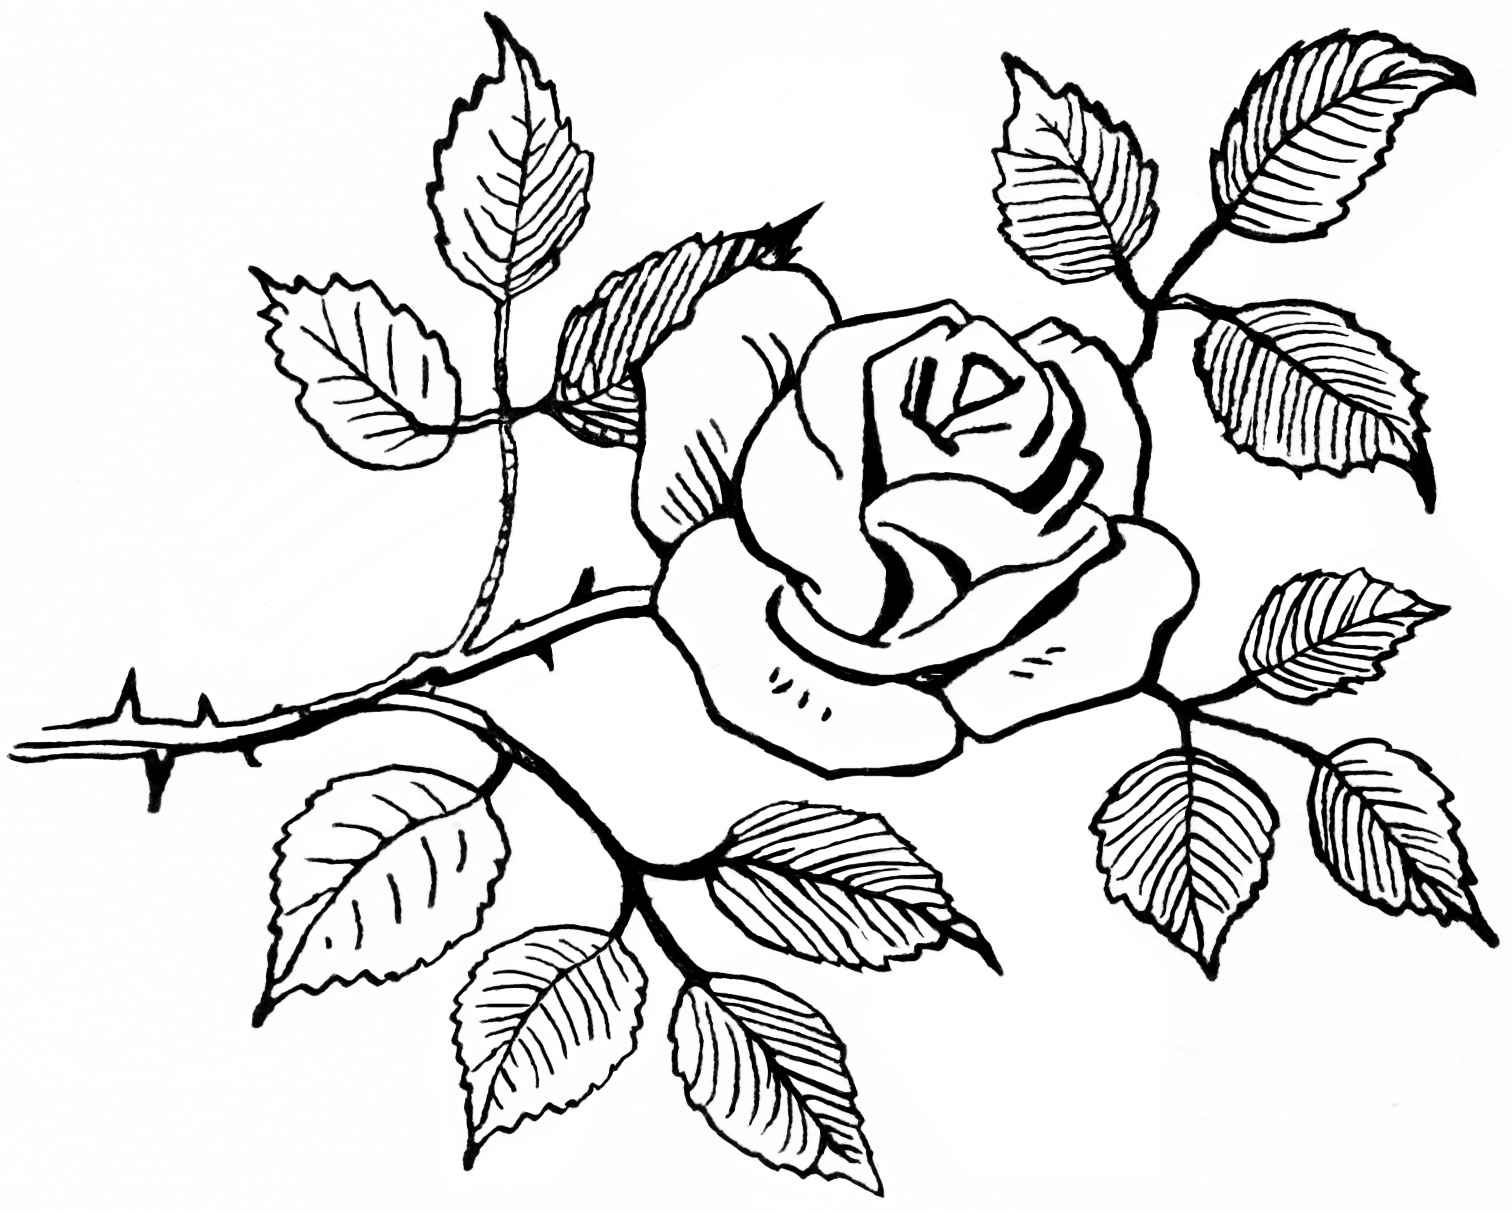 1512x1212 Knumathise Rose Clipart Black And White Images